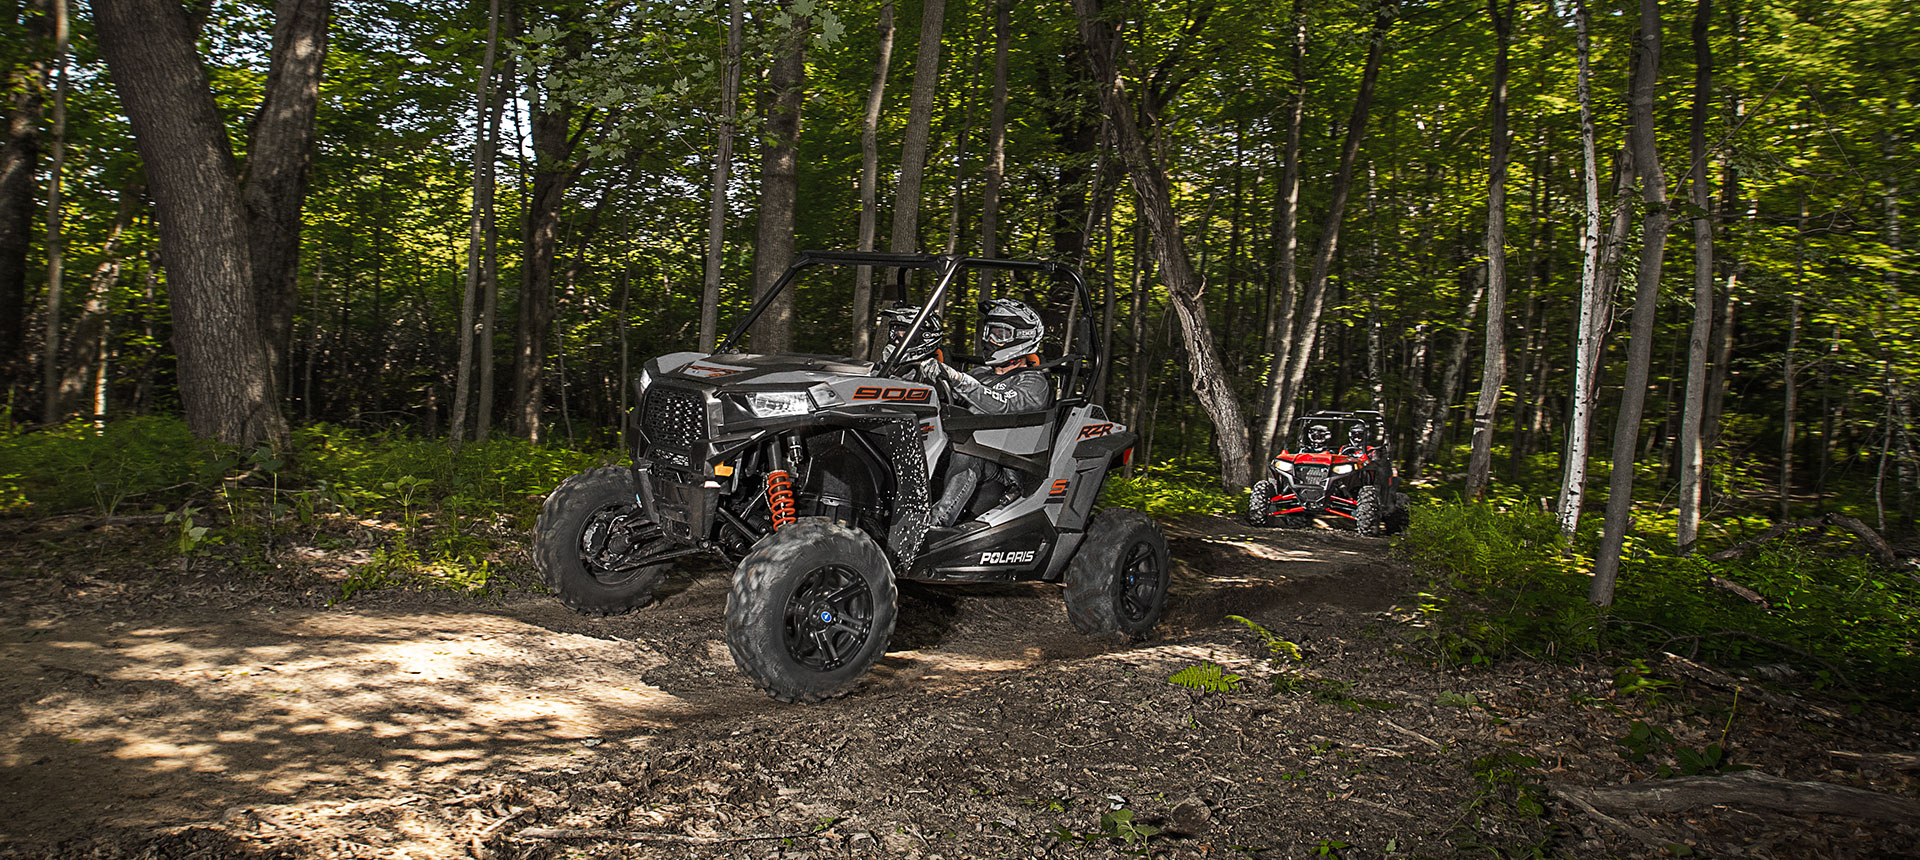 2019 Polaris RZR S 900 EPS in Park Rapids, Minnesota - Photo 8